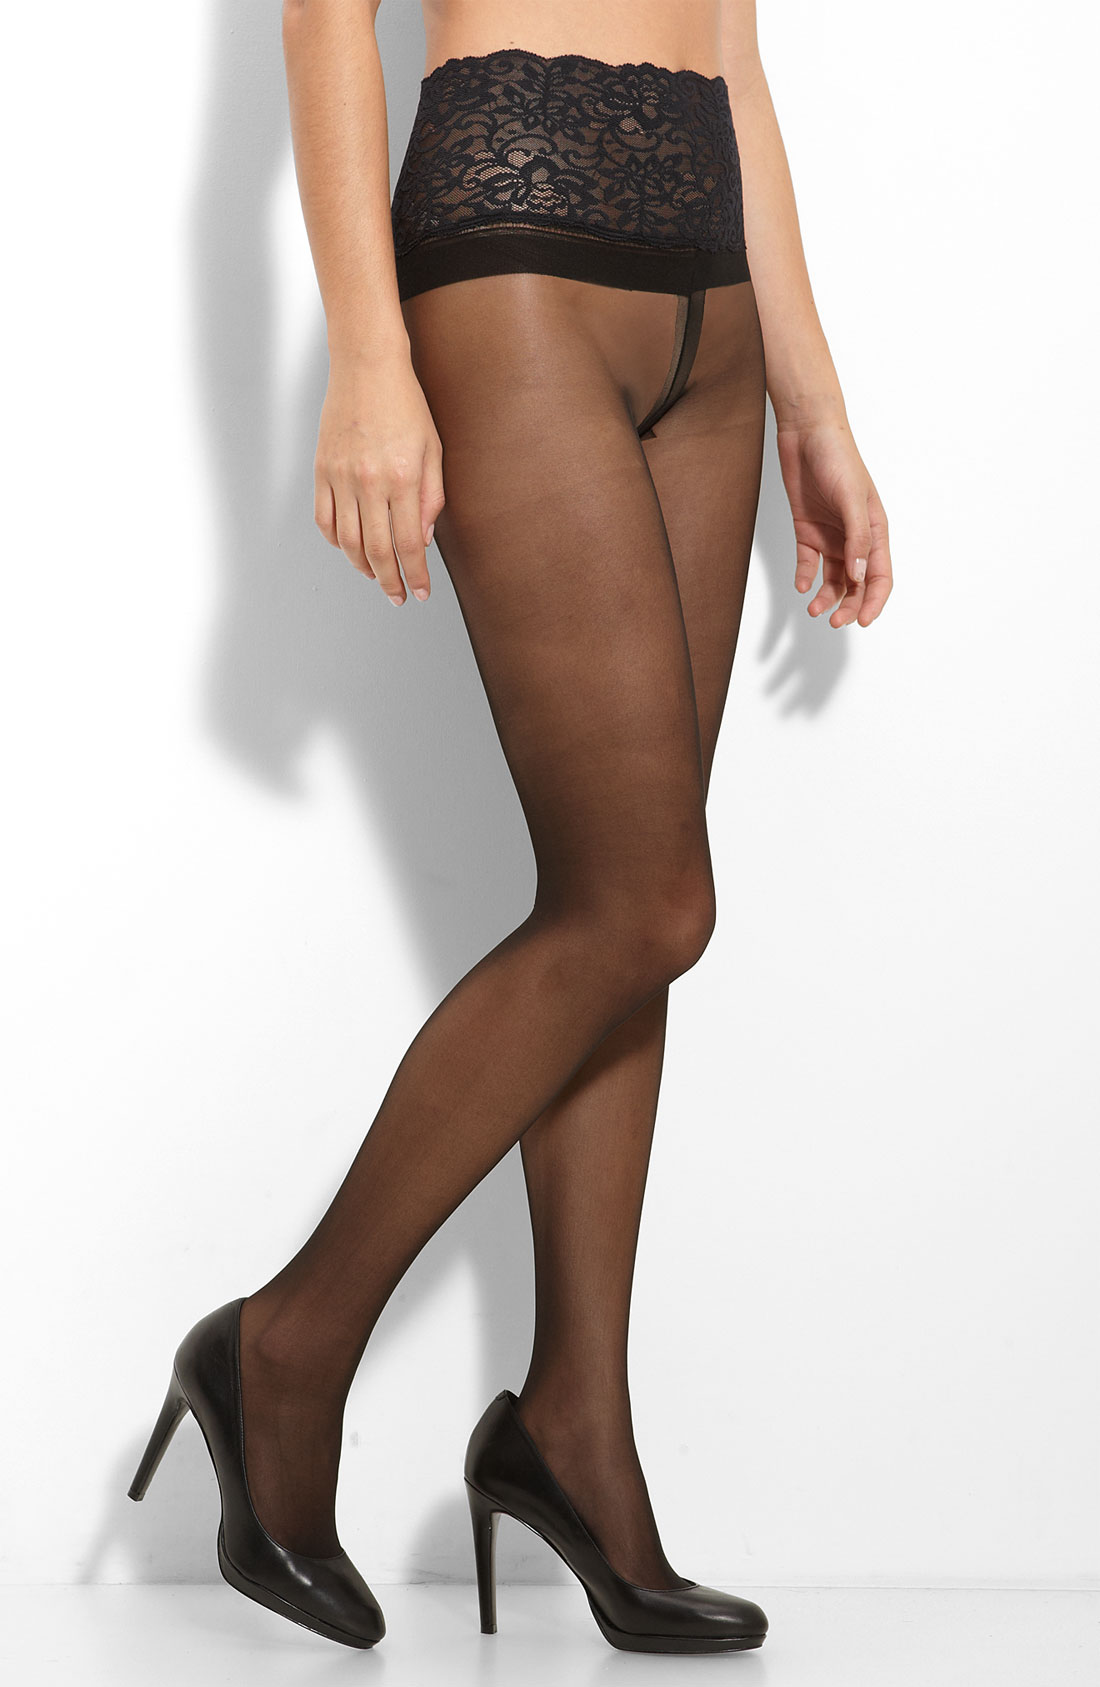 Our sheer pantyhose smooth your tummy, hips, thighs, and behind to keep you feeling in-control and confident all day long, no matter what you're wearing. From capris and stockings to tights and shorts, SPANX sheer shapewear provides a flawless finish in a variety of styles.